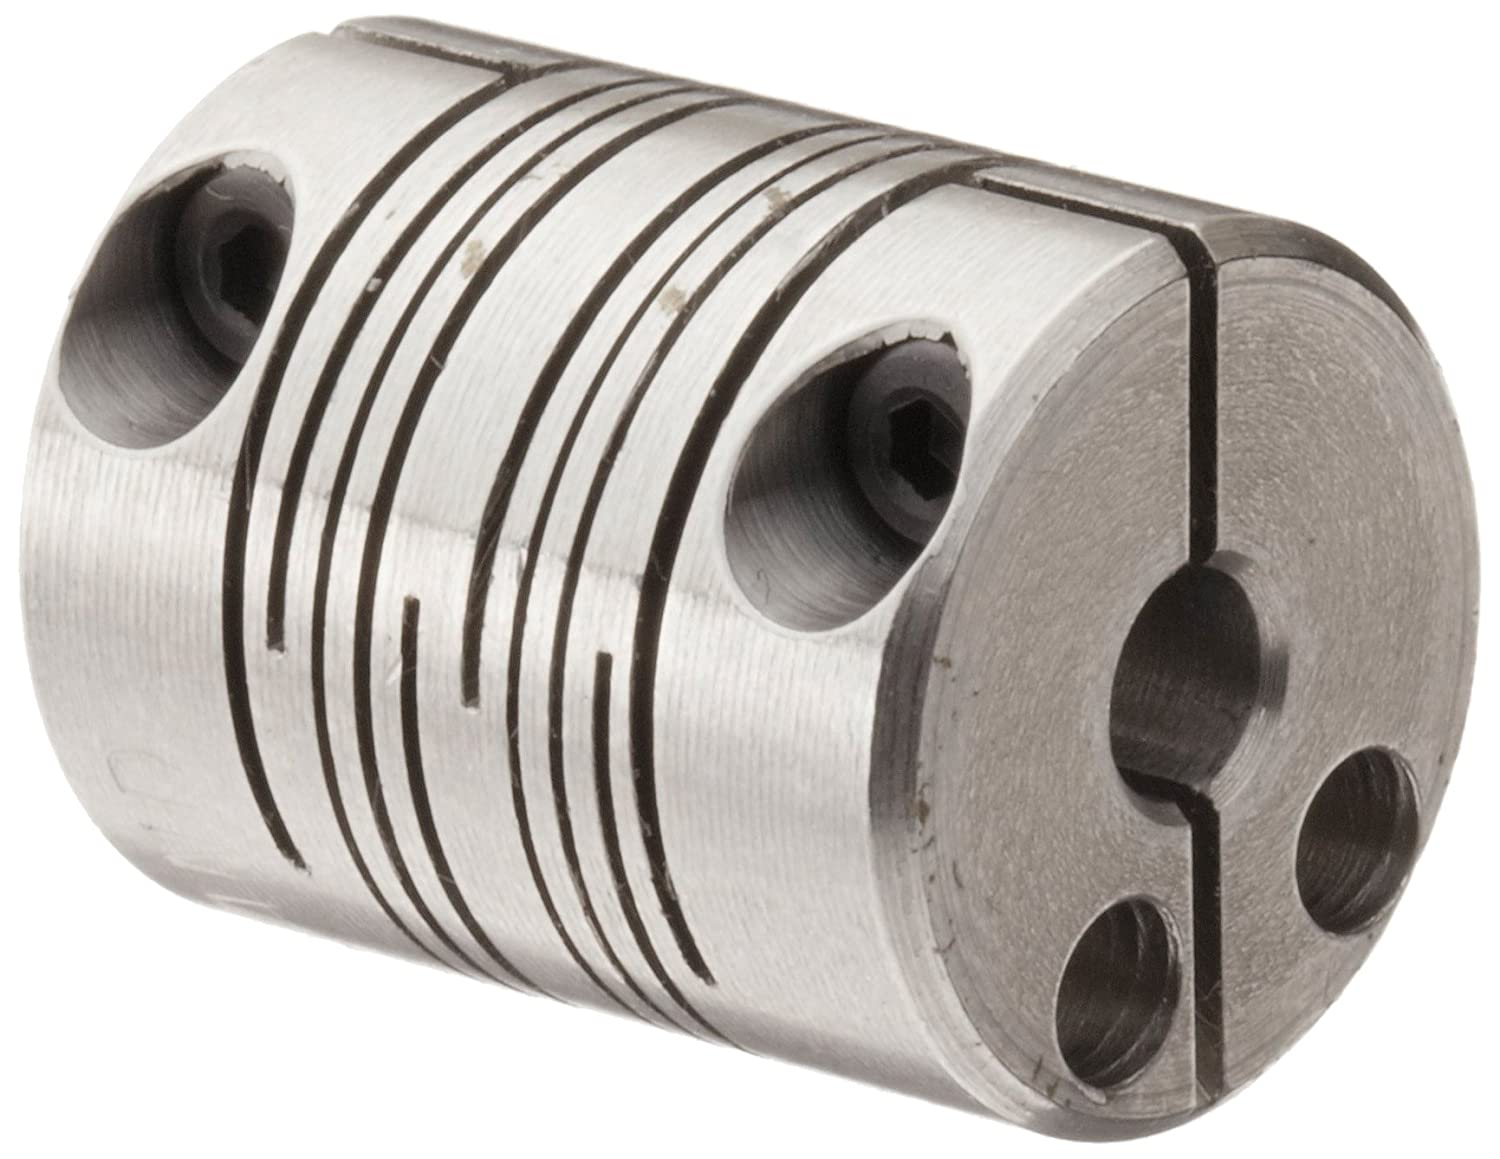 Ruland MWC20-6-4-SS Clamping Beam Stainless Clearance SALE! Limited time! Outlet SALE Coupling Steel Met